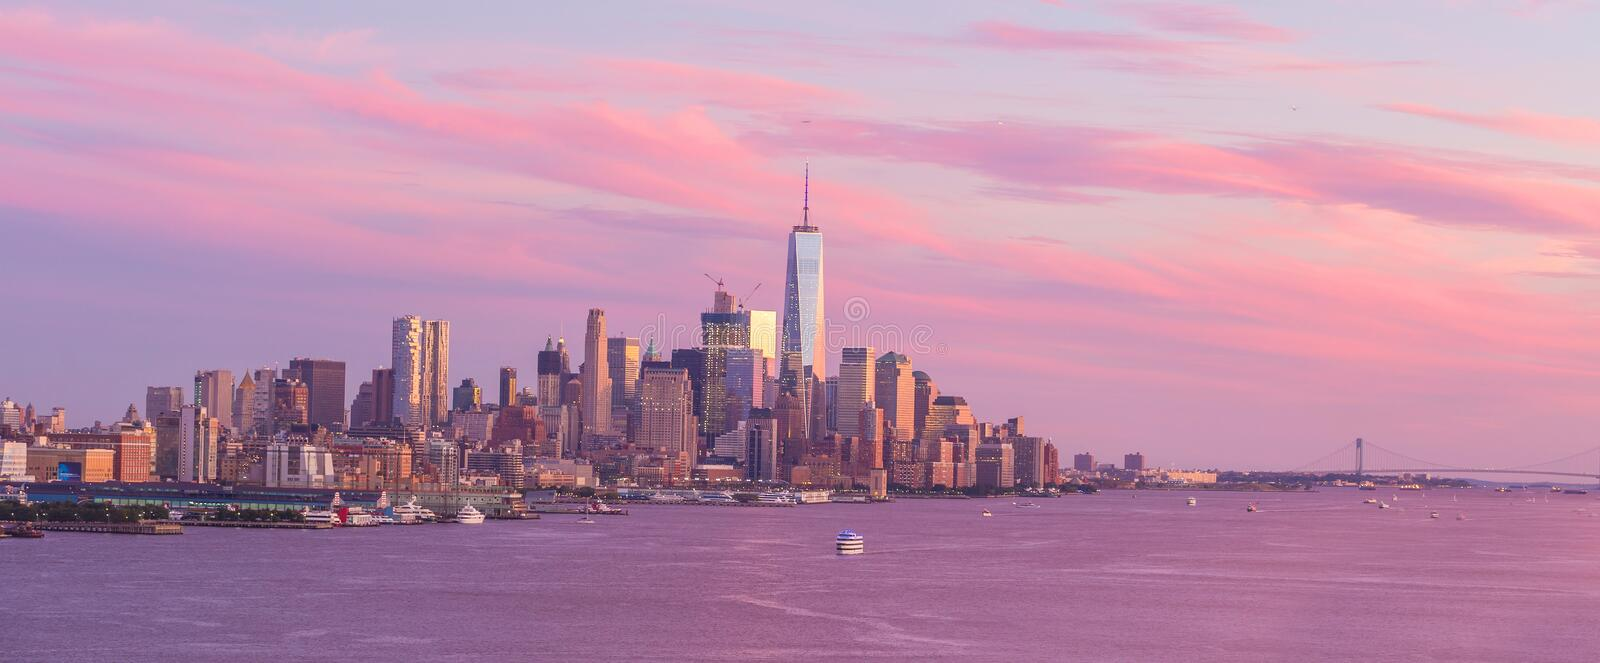 New York City midtown Manhattan sunset skyline panorama view over Hudson River royalty free stock image